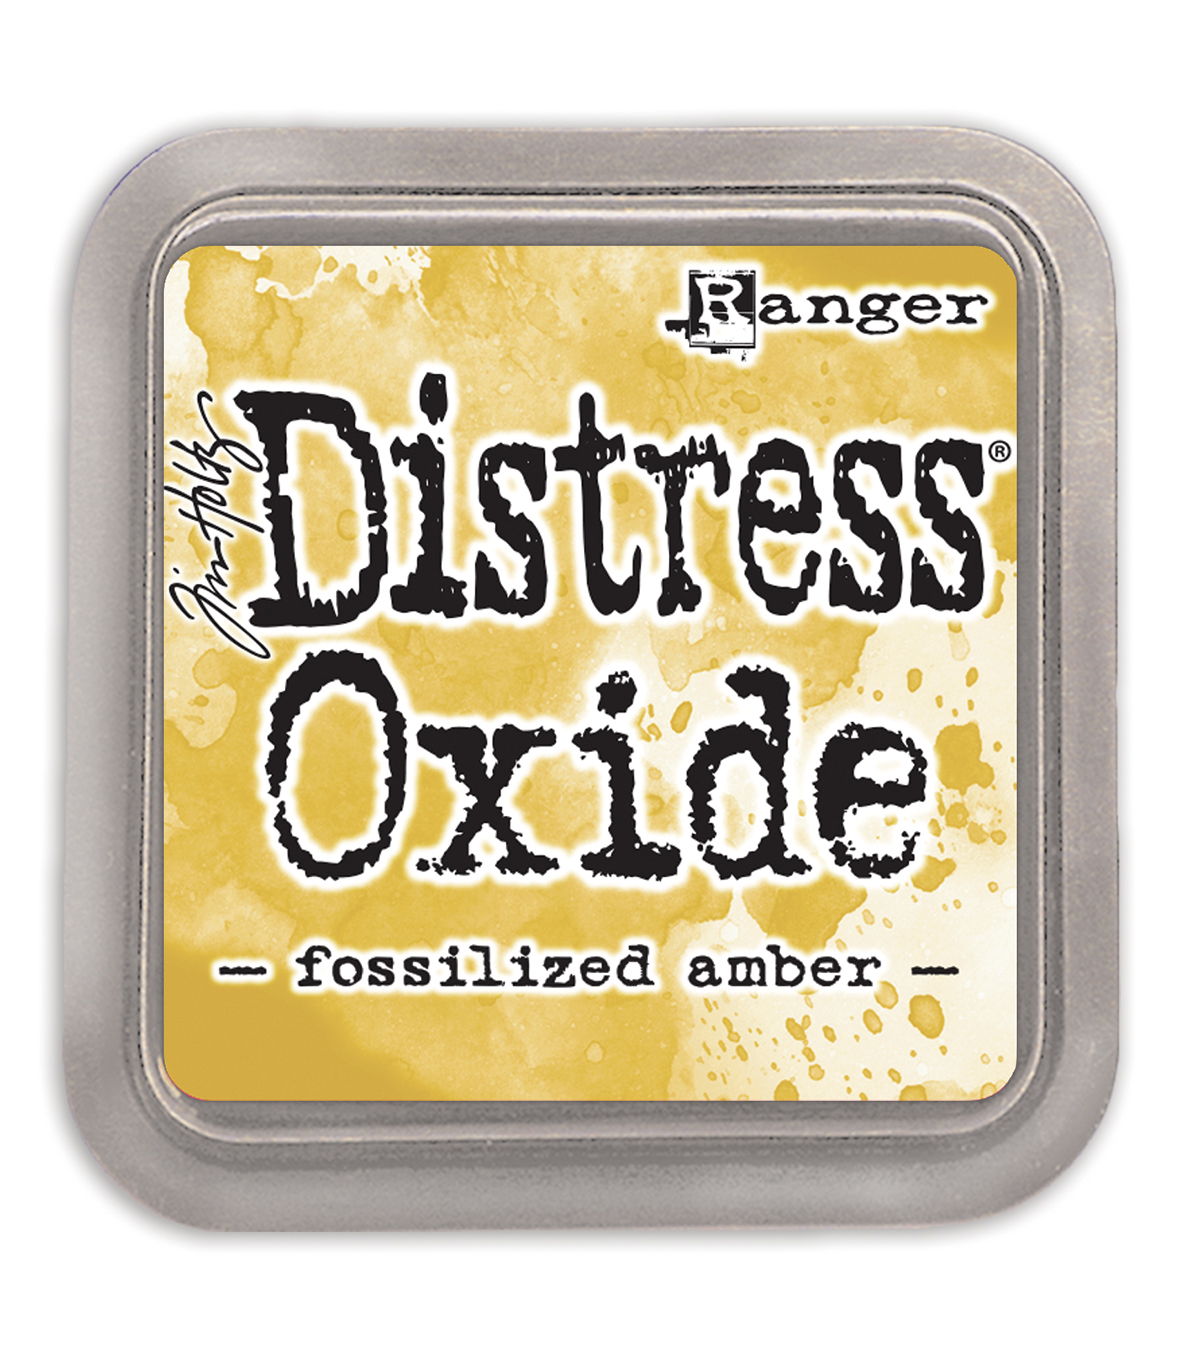 Tim Holtz Distress Oxide Ink Pad, Fossilized Amber